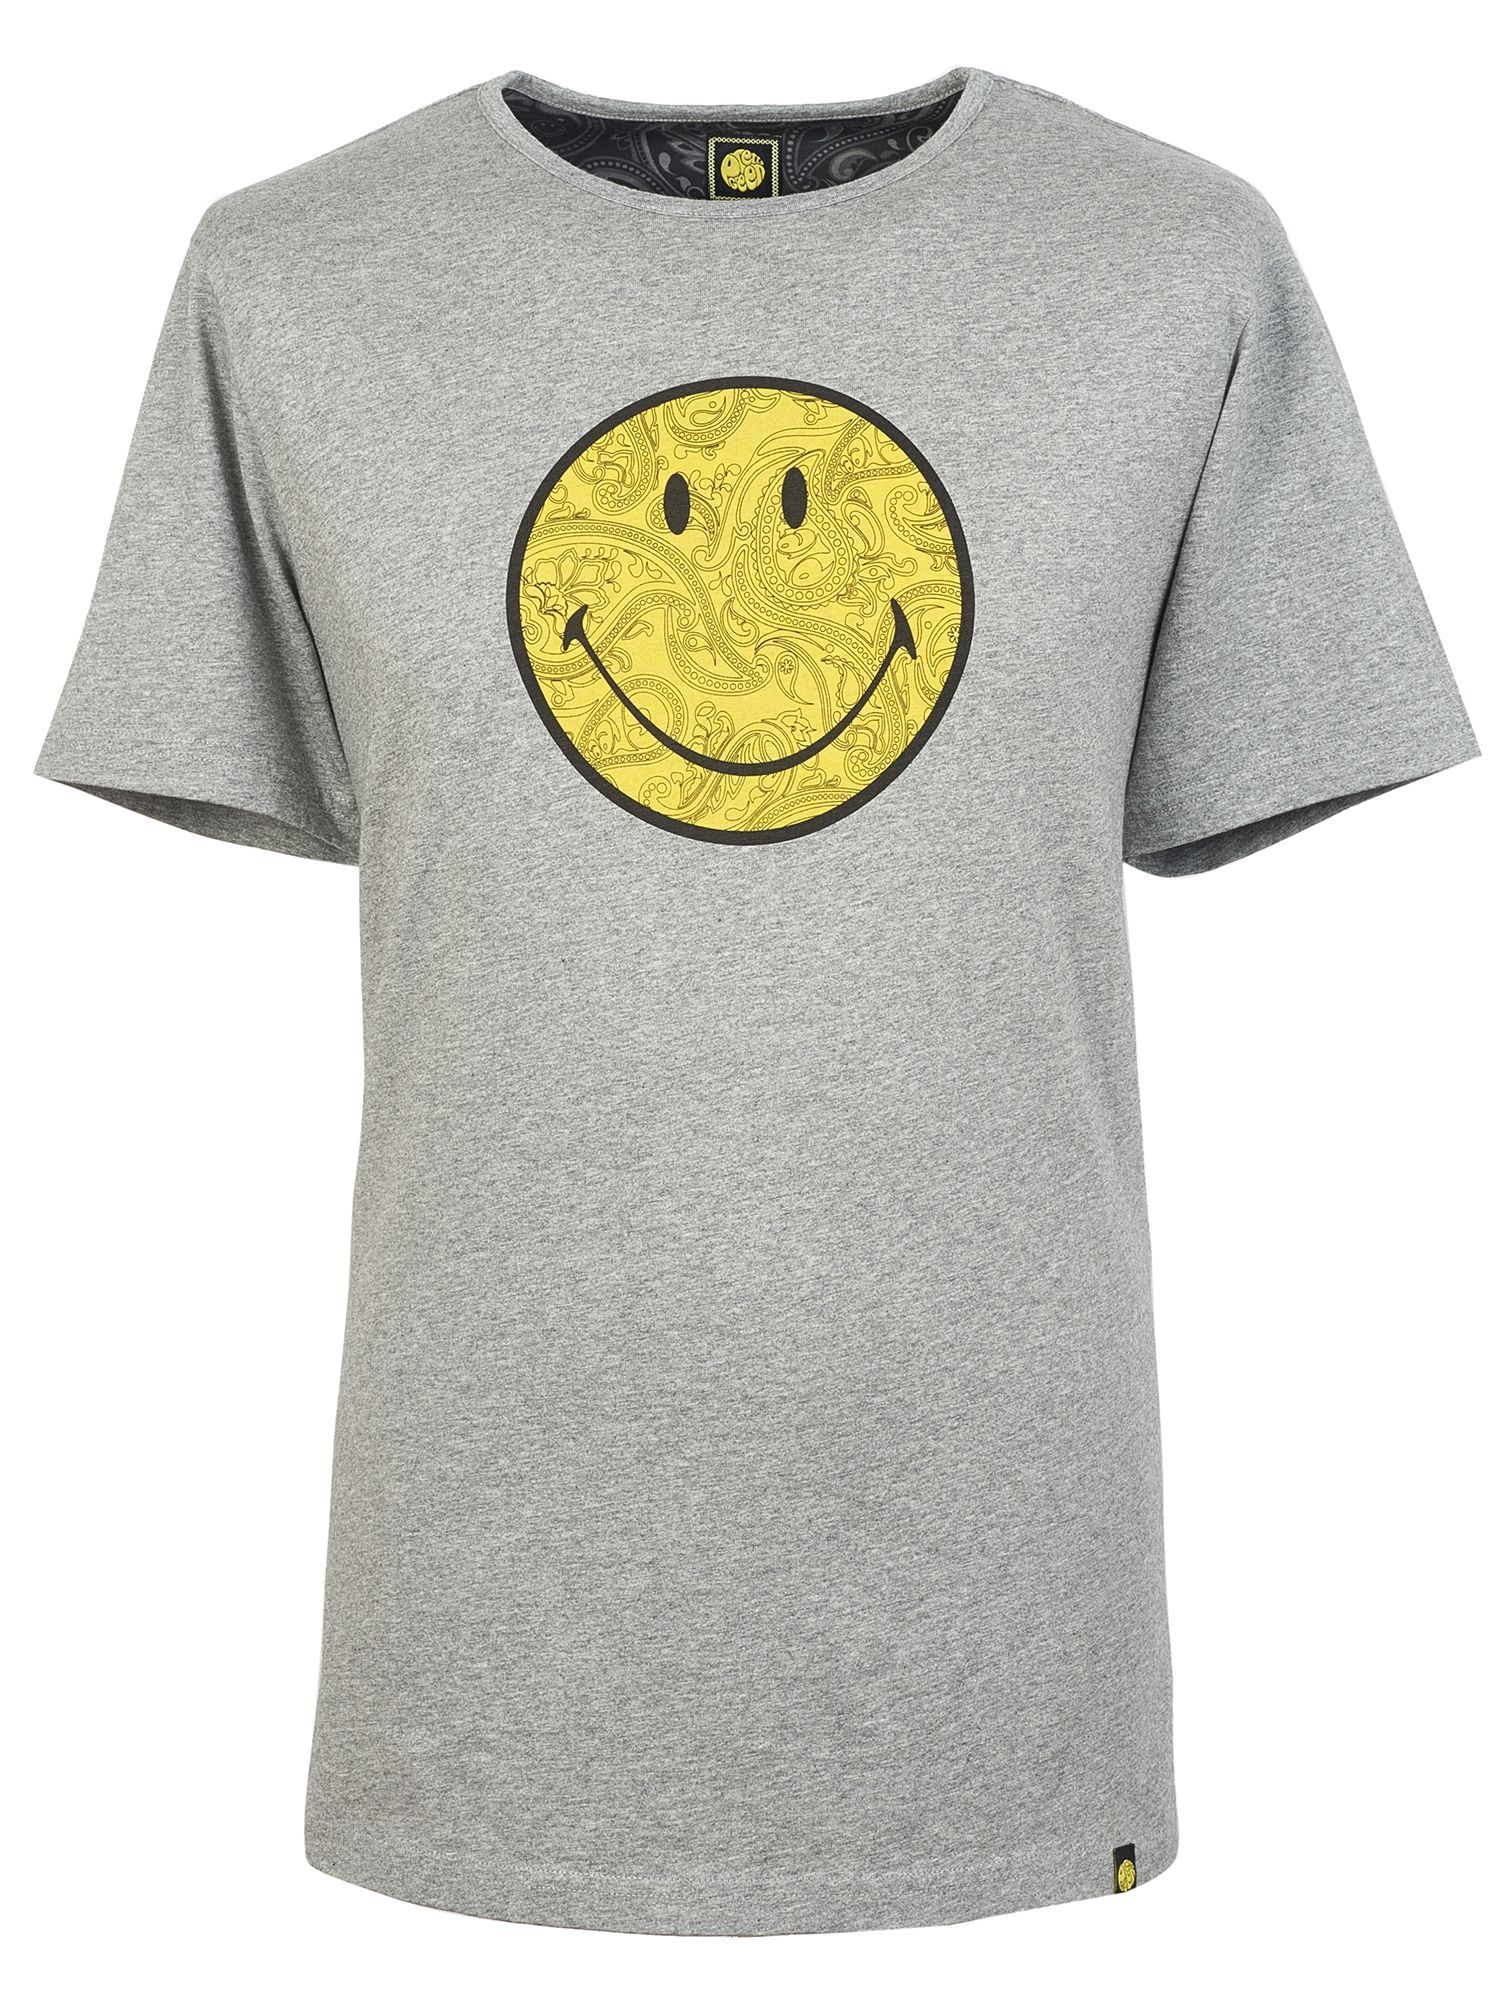 Men's Pretty Green Smiley Logo Print T-Shirt, Grey